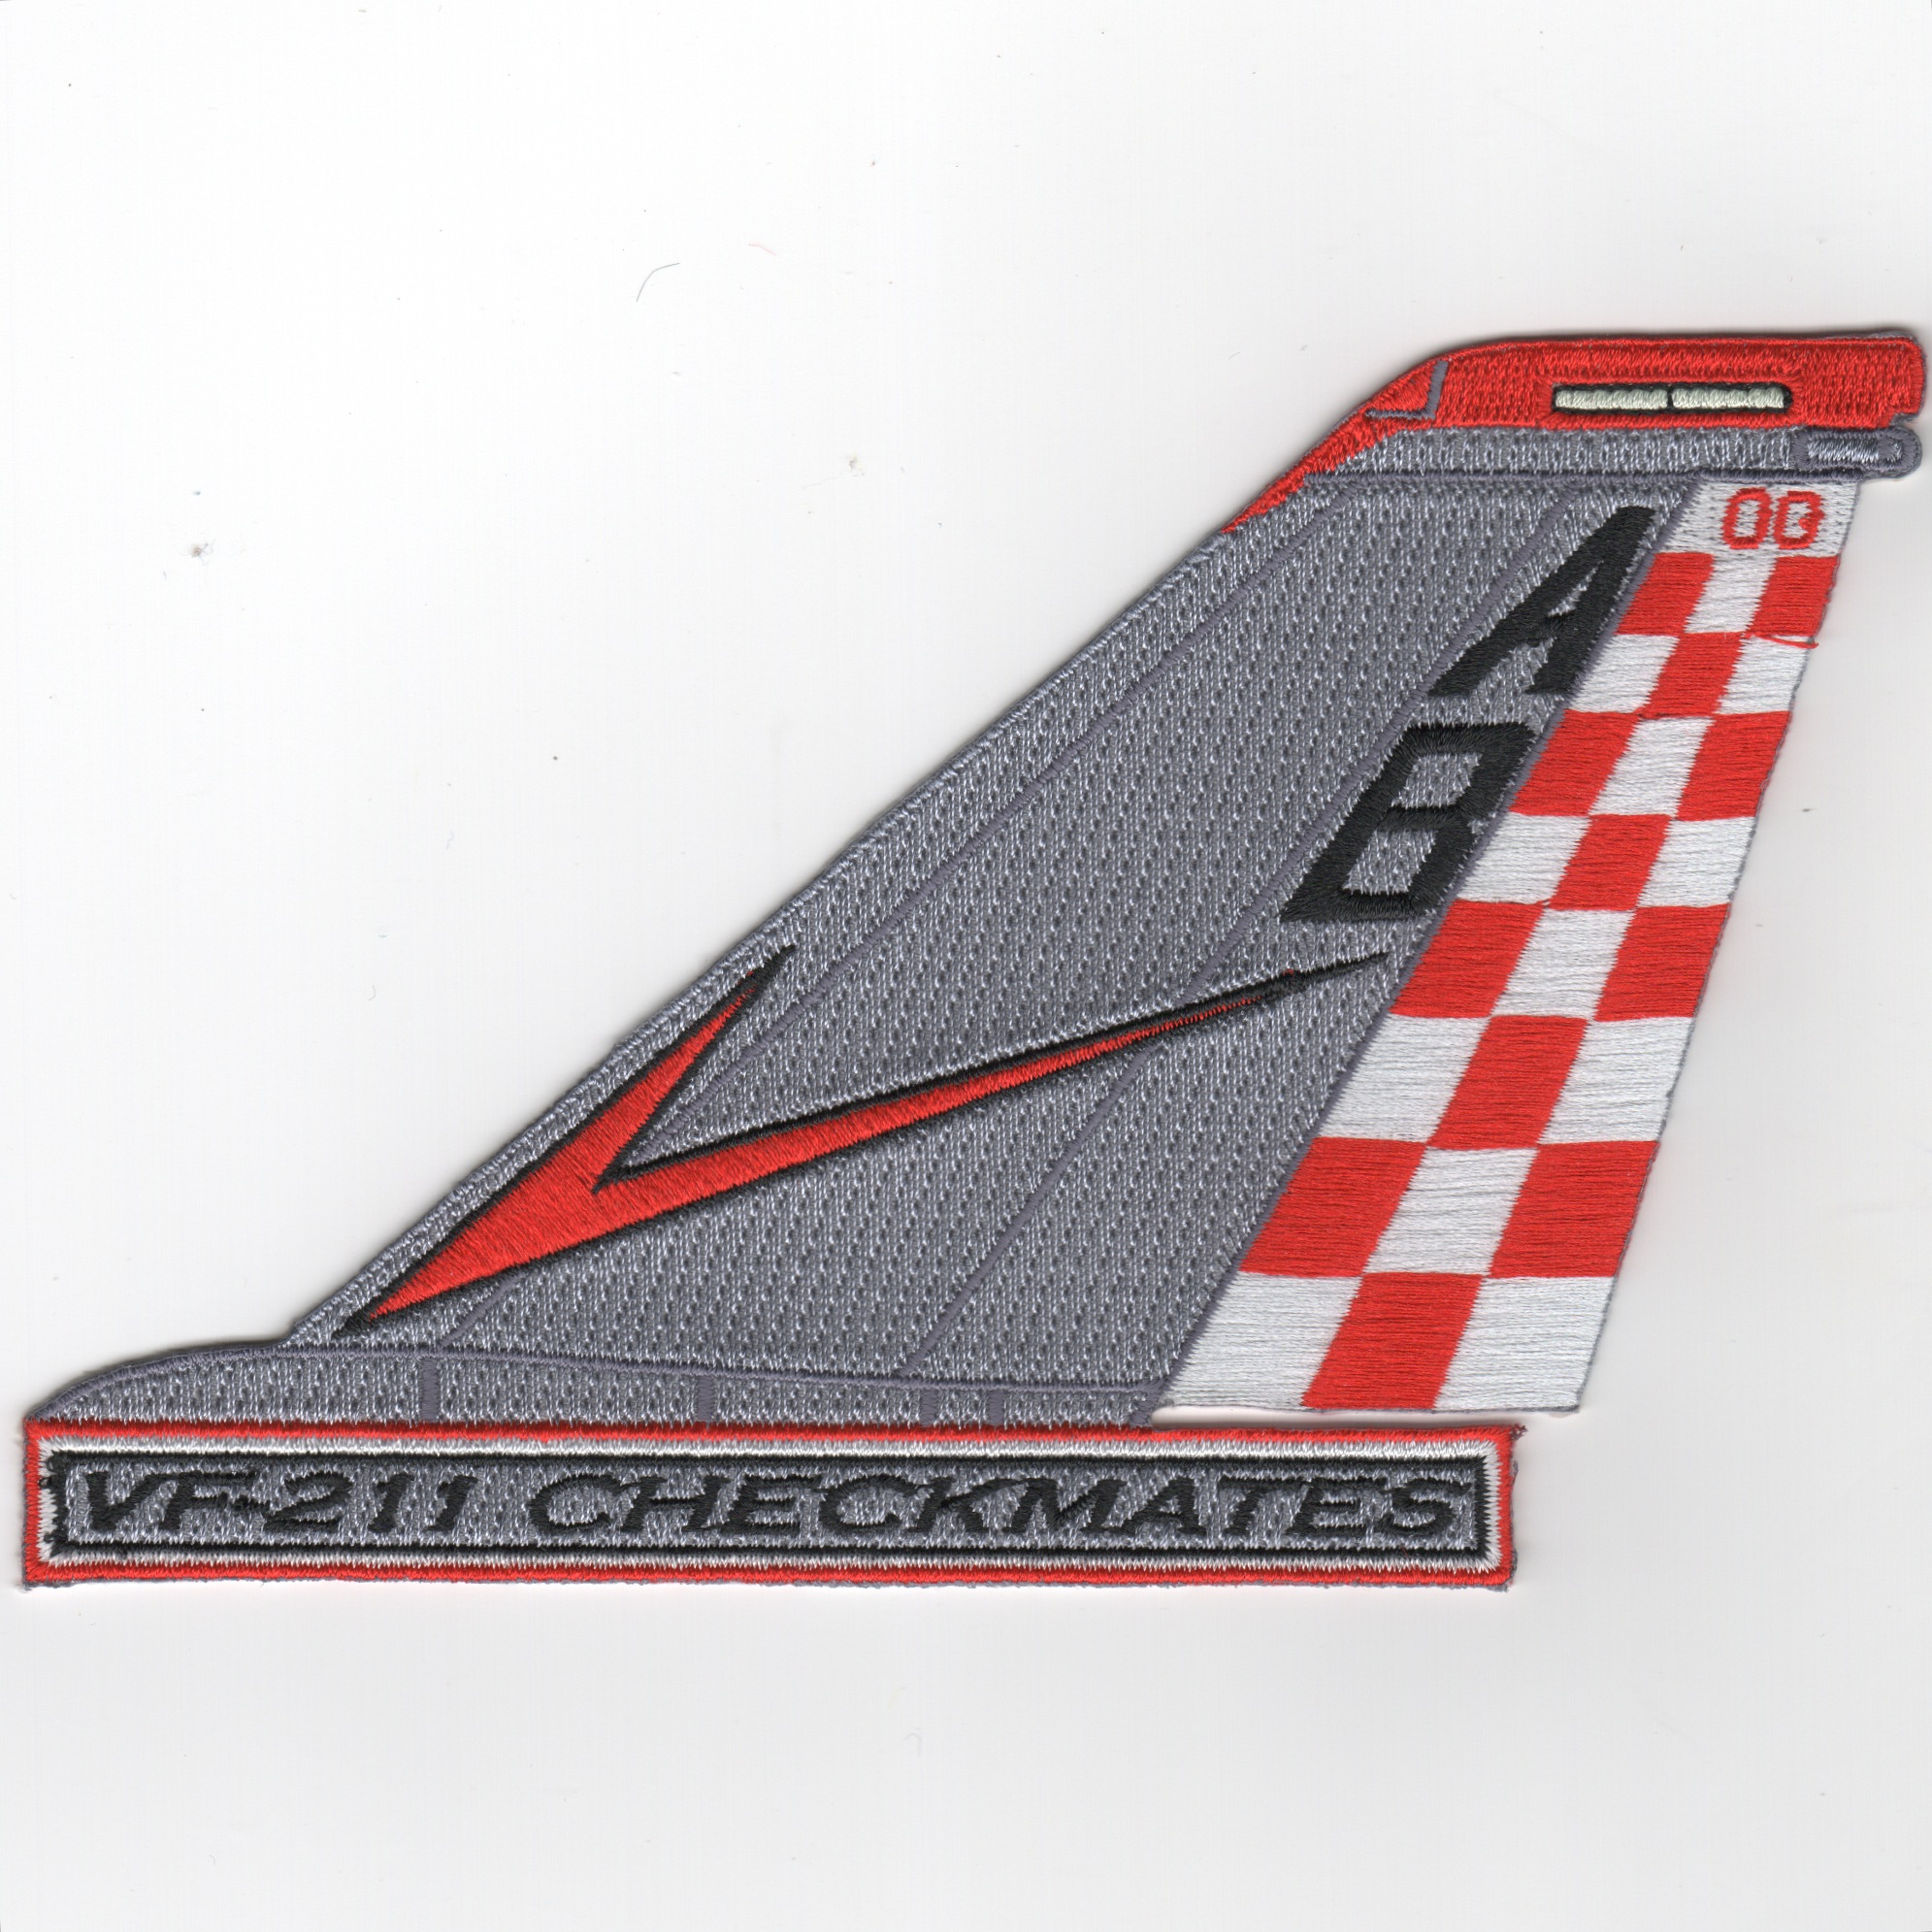 VF-211 F-14 Tailfin (Text/Chevron)